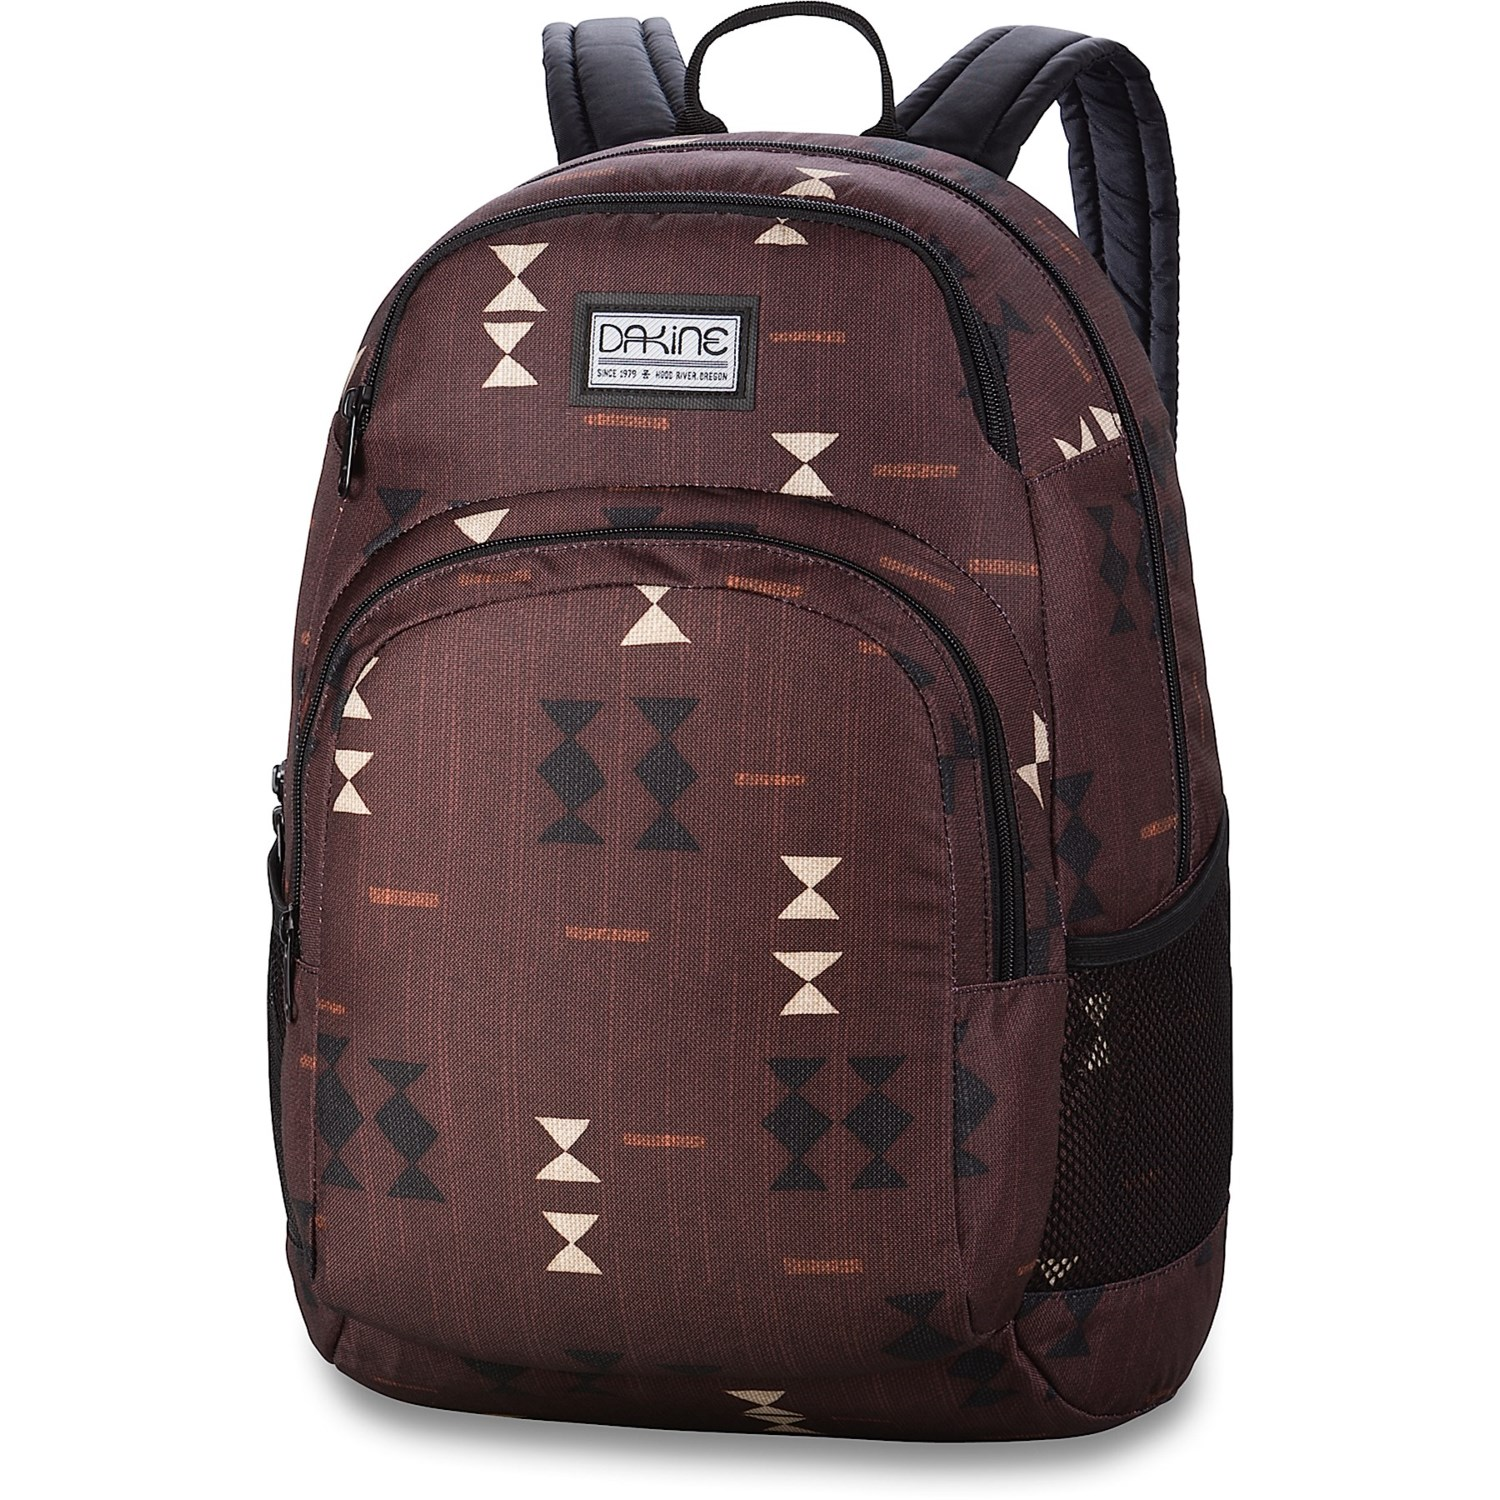 DaKine Hana Backpack (For Women) - Save 47%